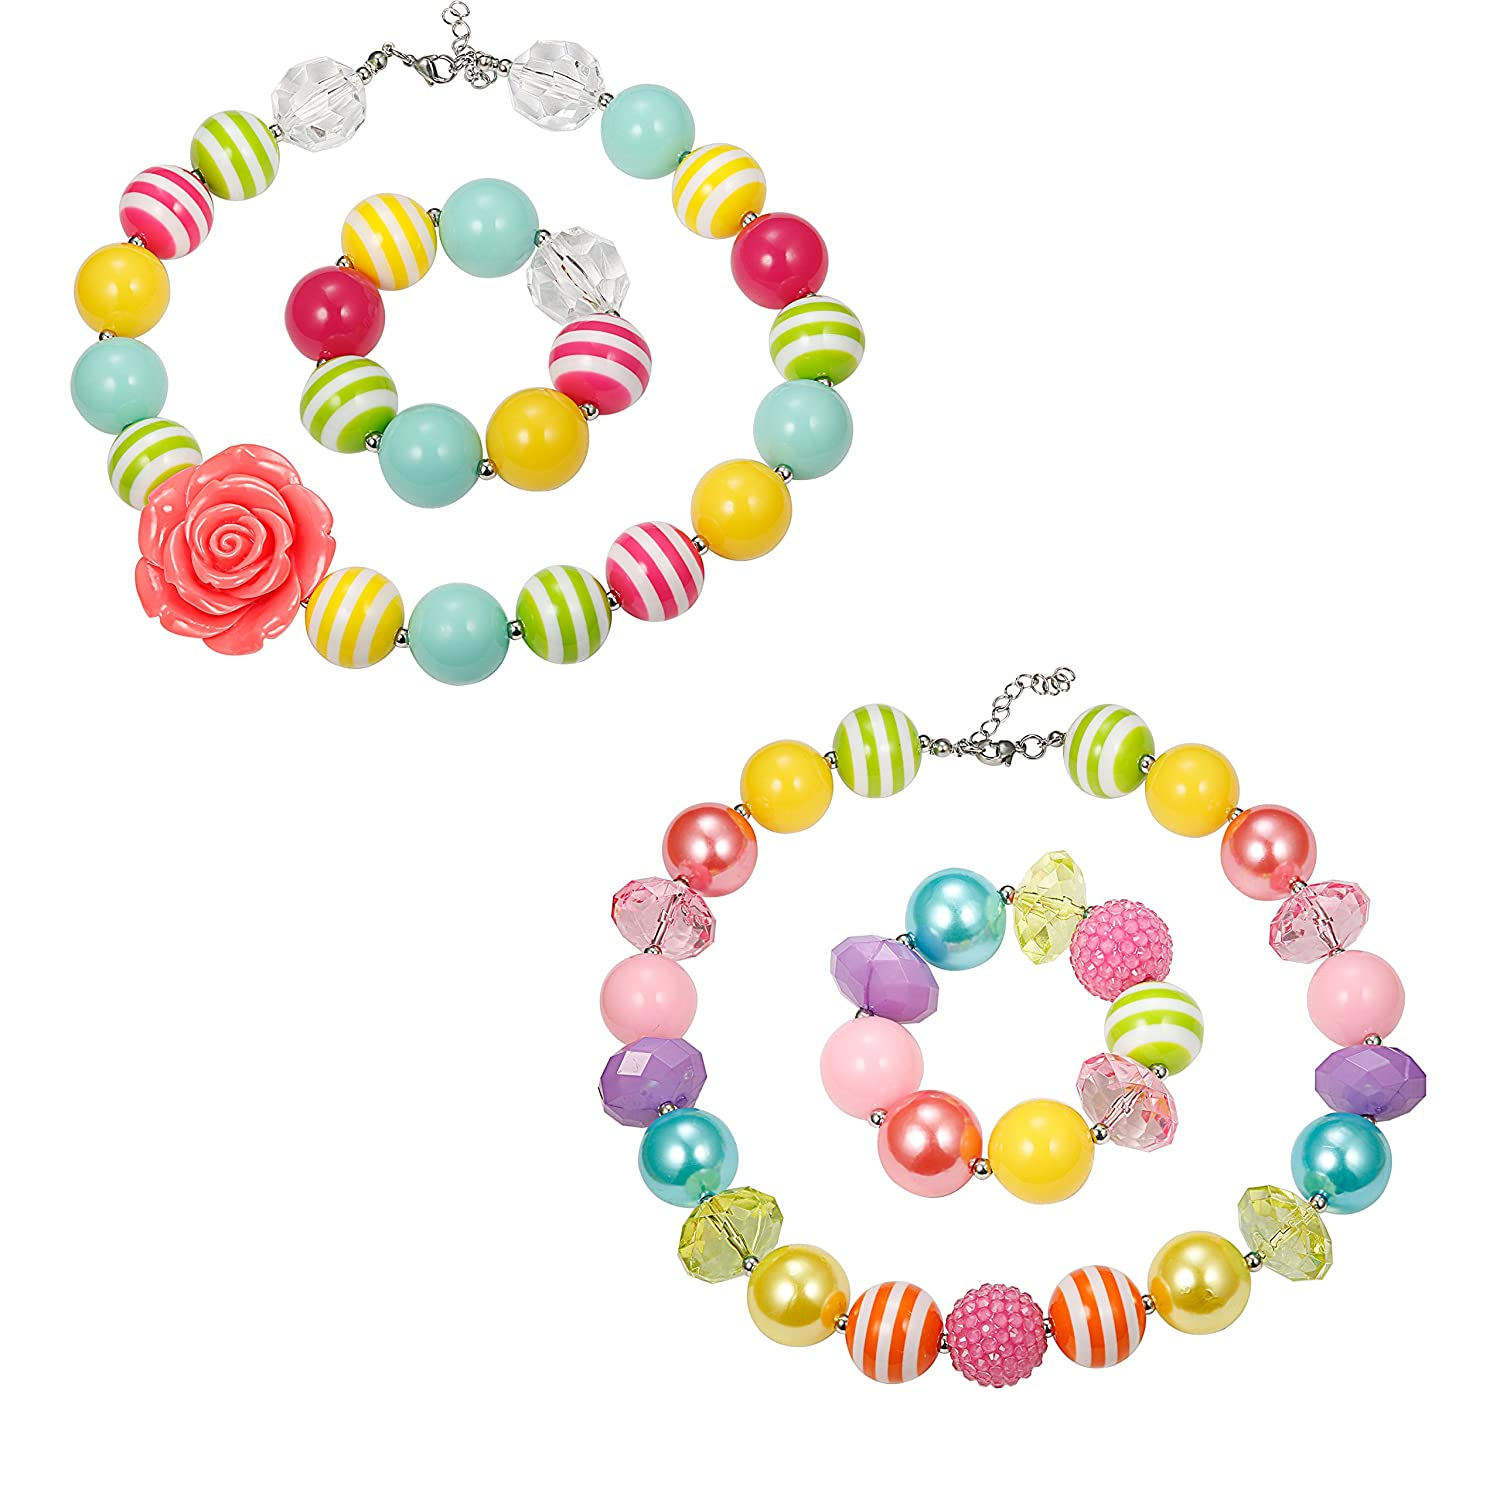 Thunaraz 1-2 Pairs Cute Chunky Bubblegum Necklace and Bracelet set for Girls 0C-F1F7-W47N